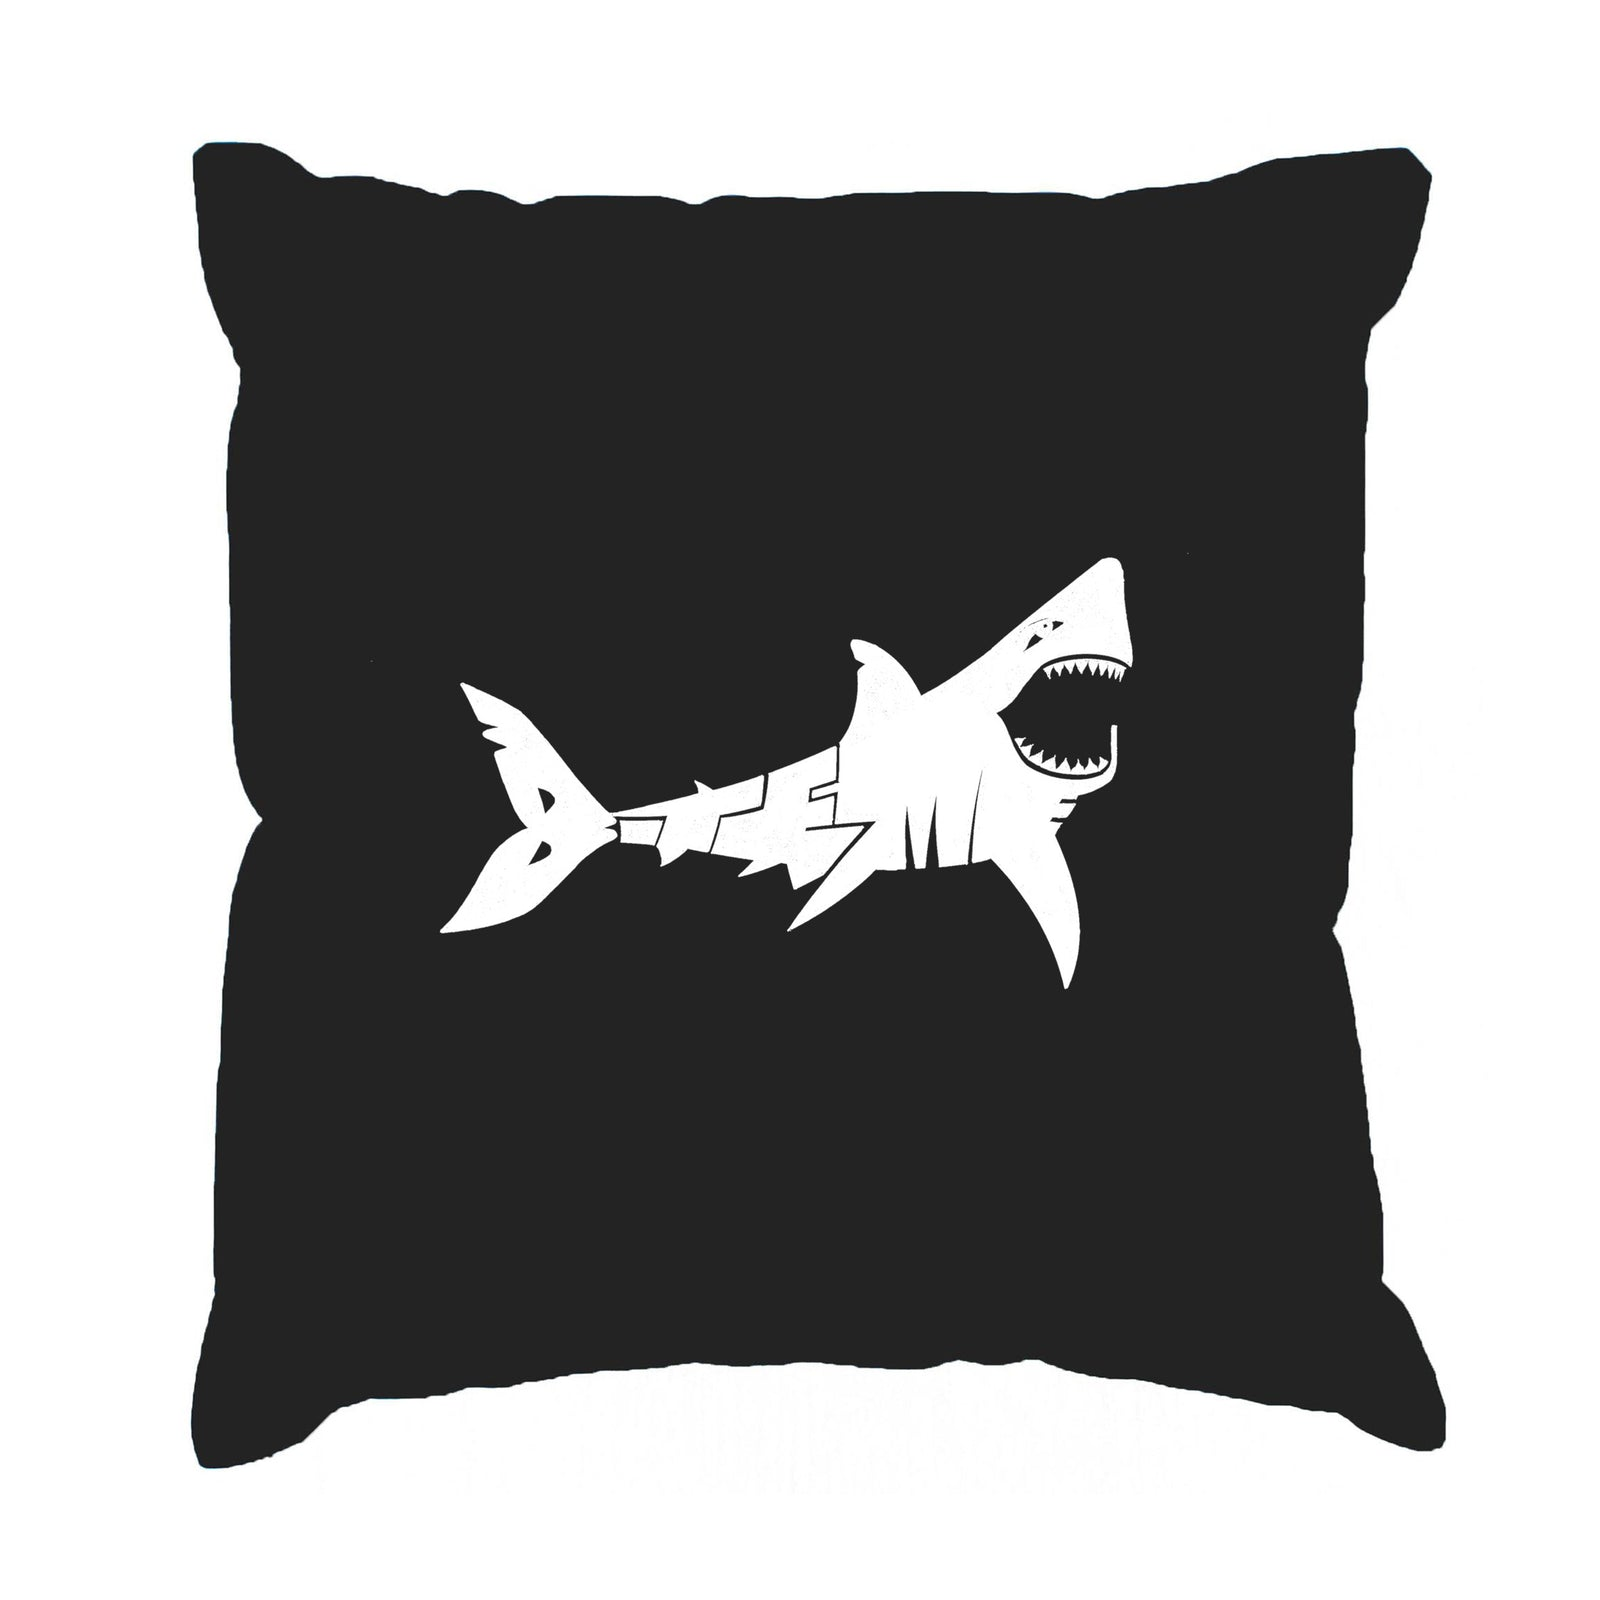 Throw Pillow Cover - BITE ME